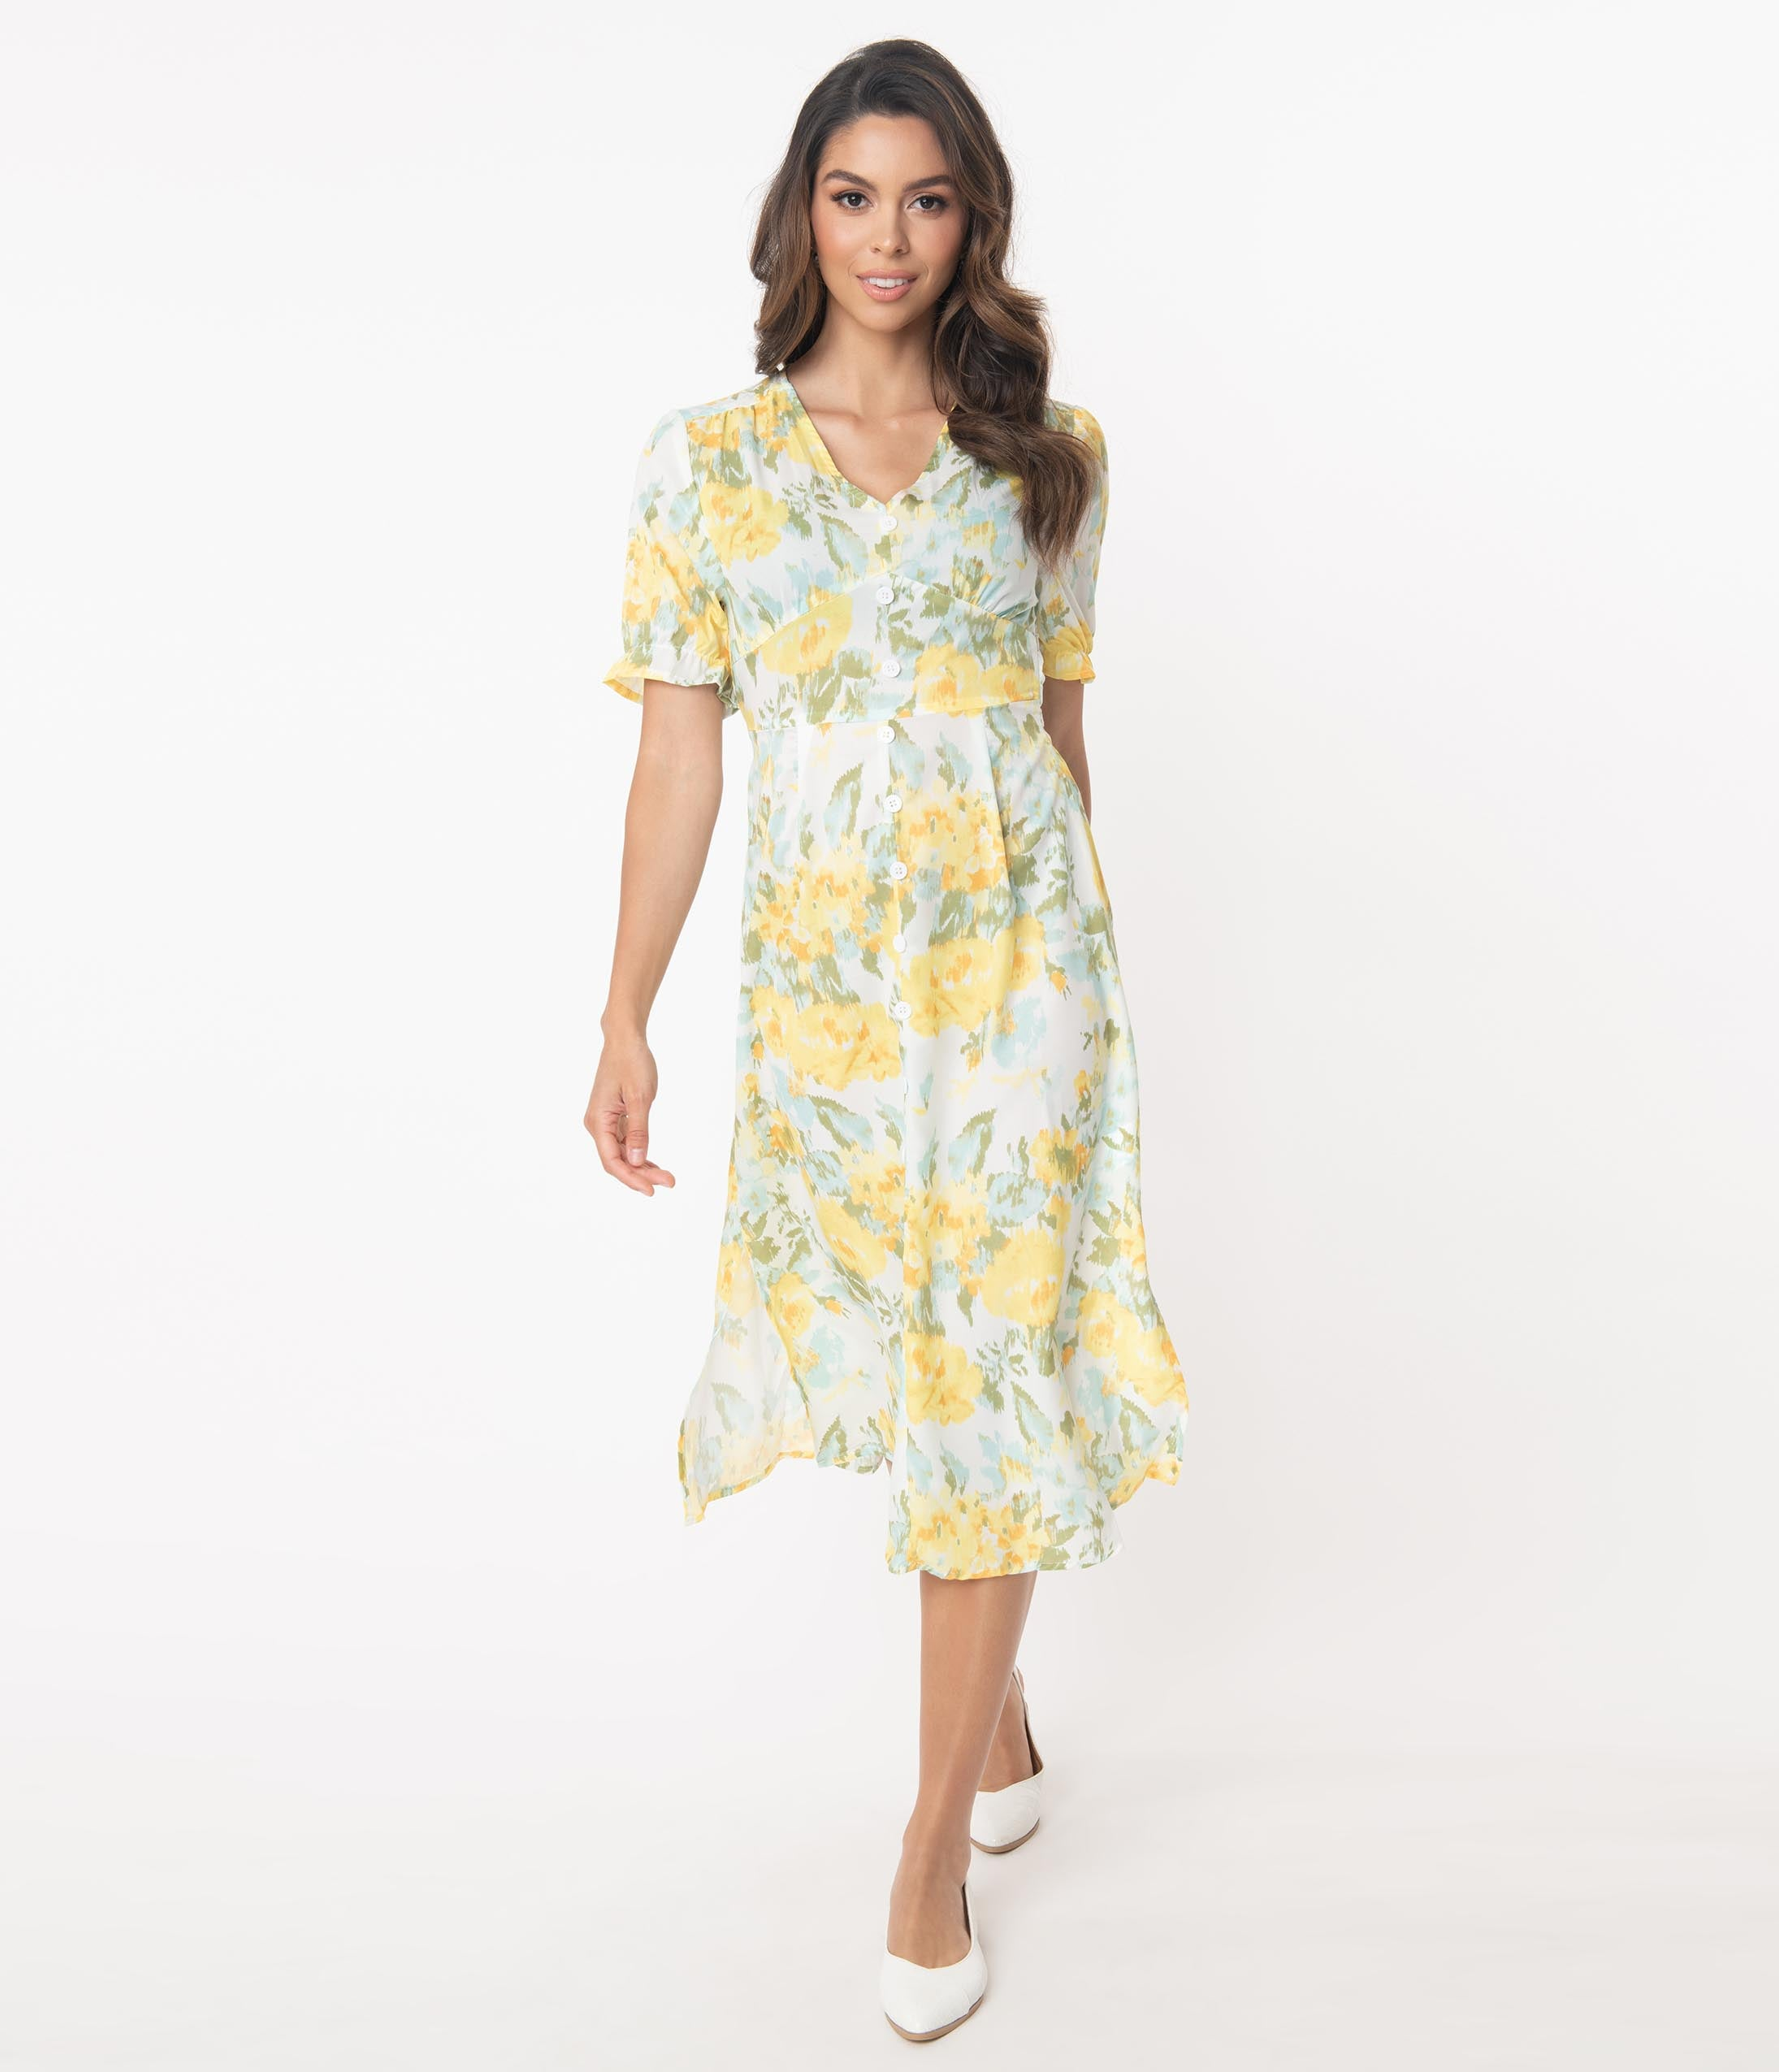 Vintage Style Dresses | Vintage Inspired Dresses Retro Style White  Yellow Floral Midi Dress $68.00 AT vintagedancer.com